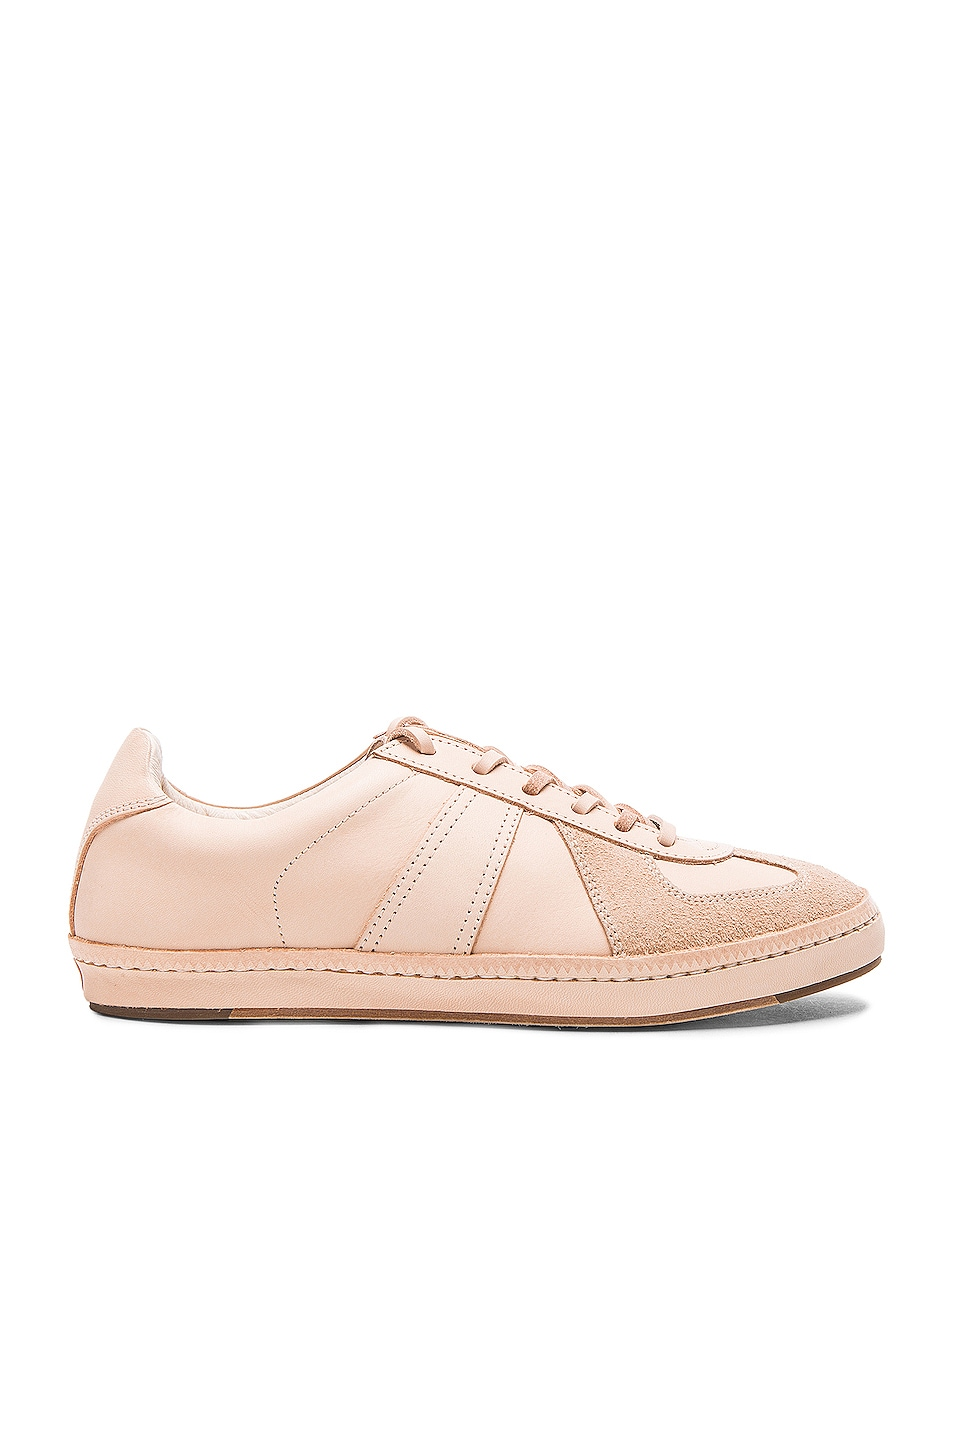 Image 1 of Hender Scheme Manual Industrial Product 05 in Natural